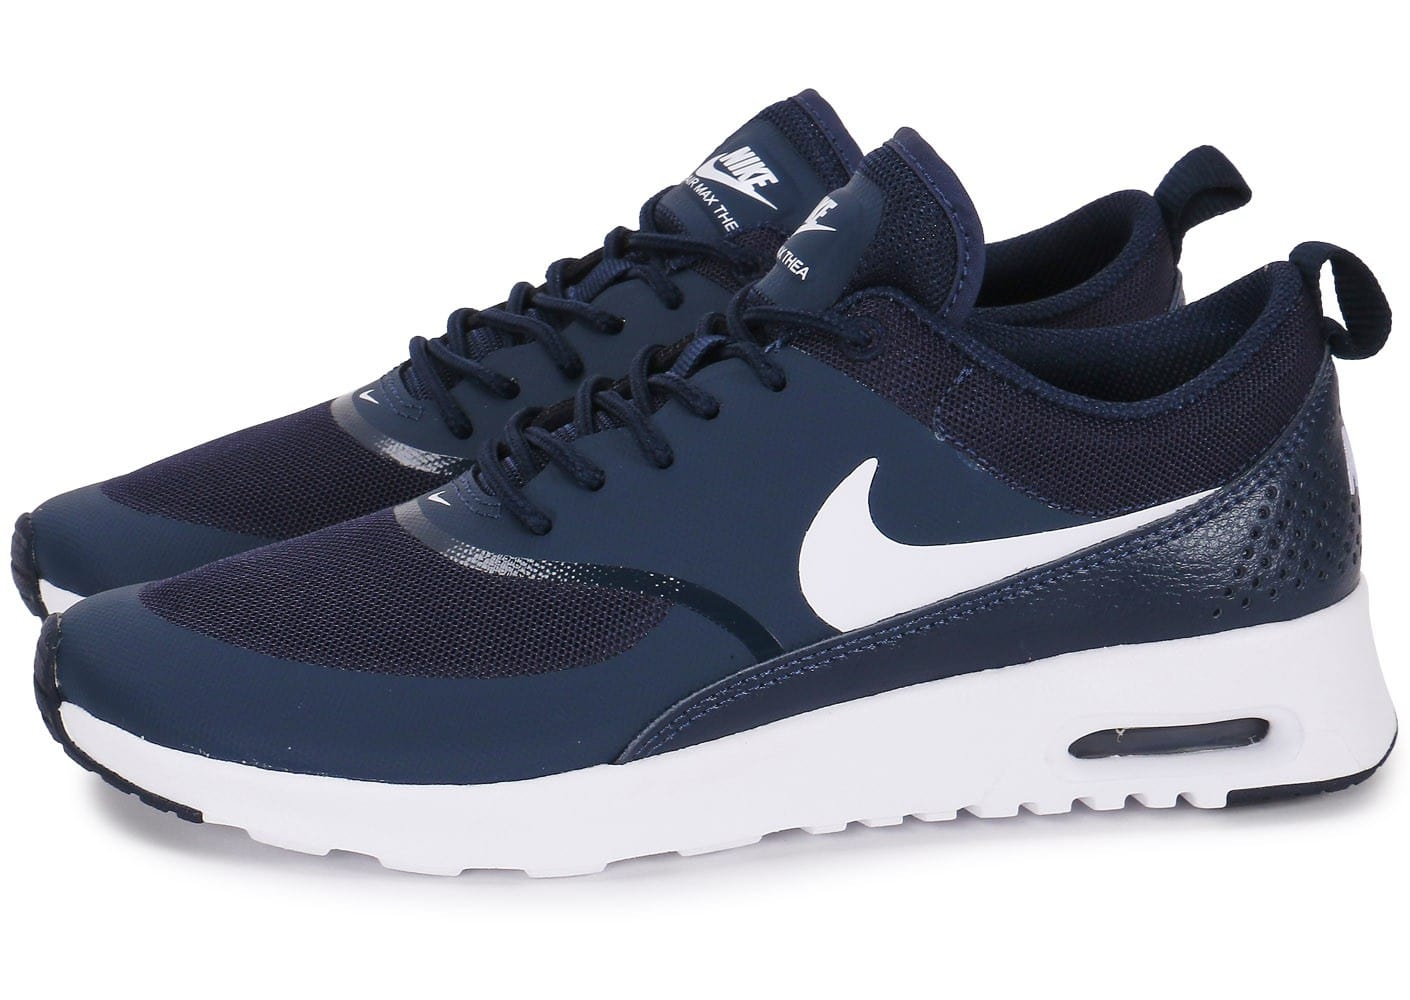 soldes nike air max thea bleu marine chaussures toutes les baskets sold es chausport. Black Bedroom Furniture Sets. Home Design Ideas